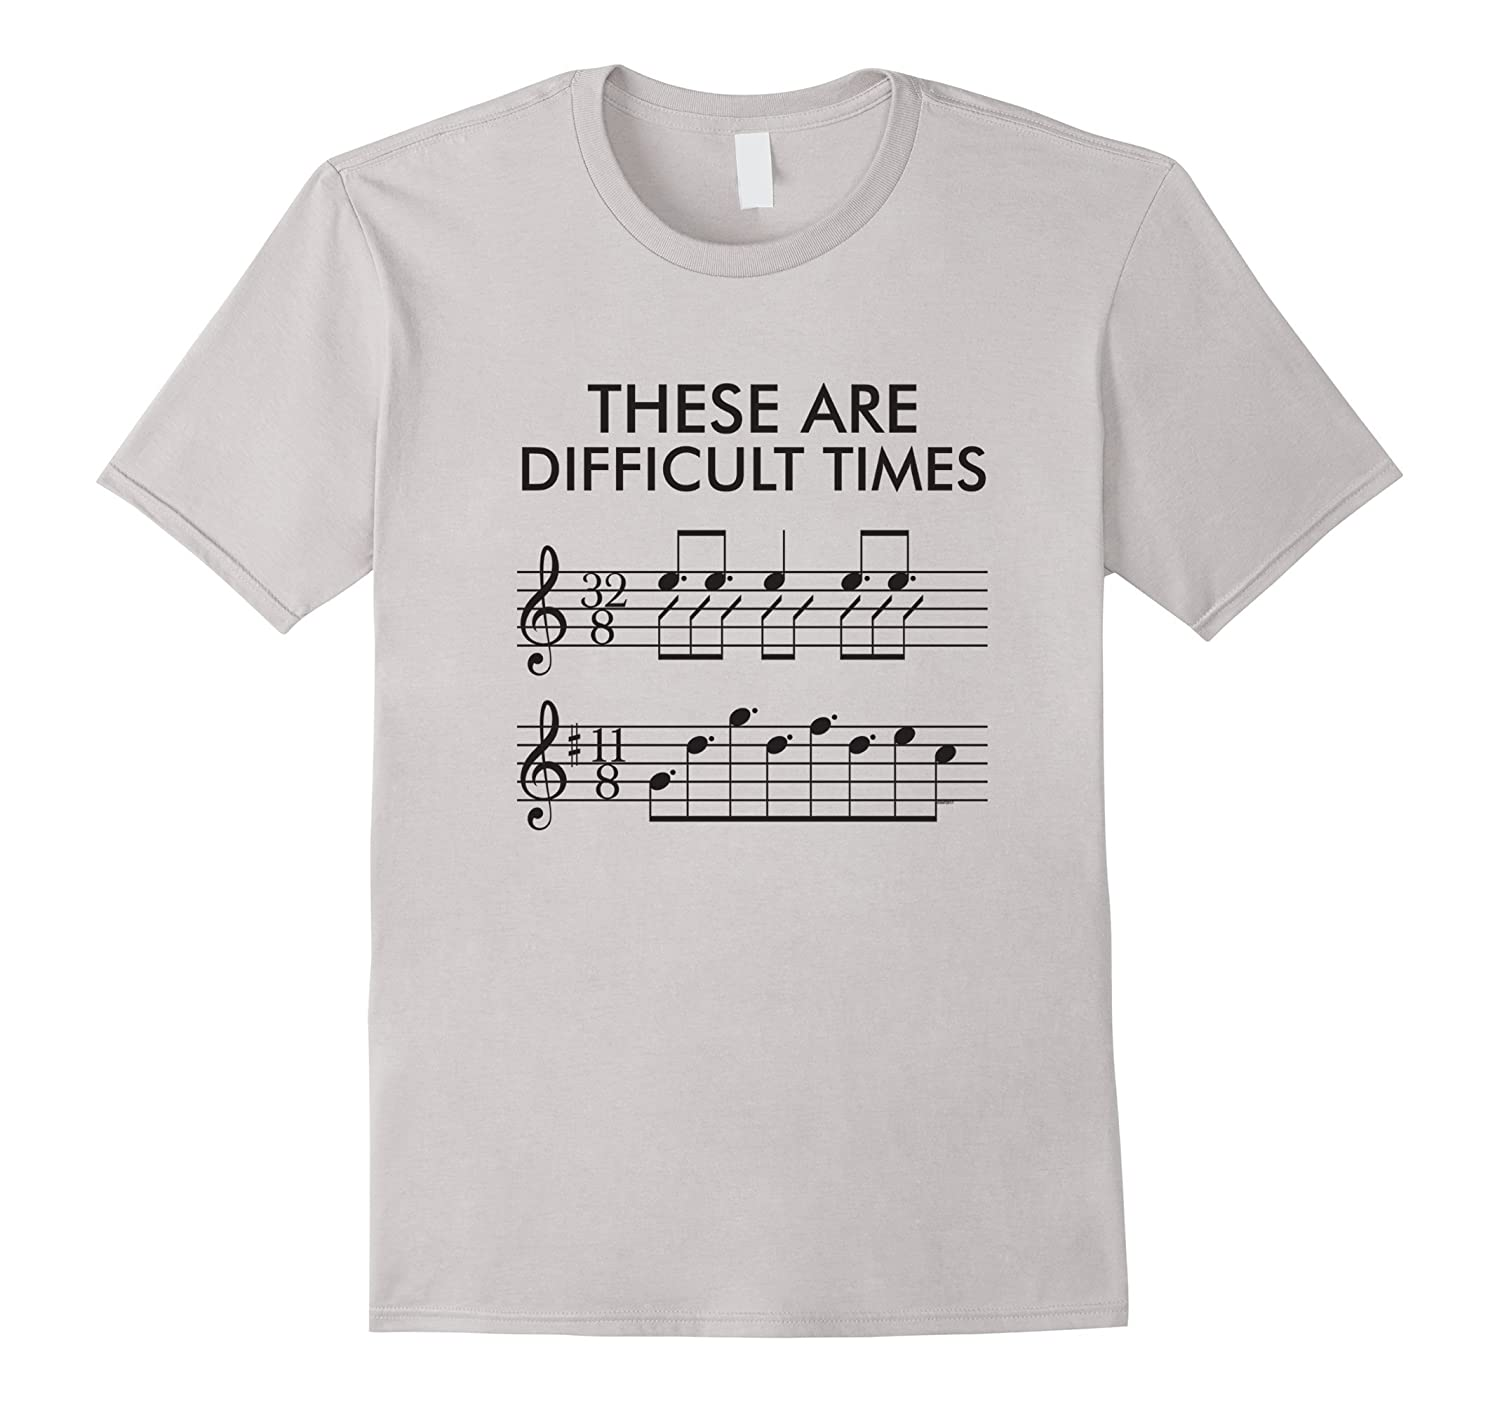 b4da9687f These Are Difficult Times – Funny Music T-shirt-CL – Colamaga